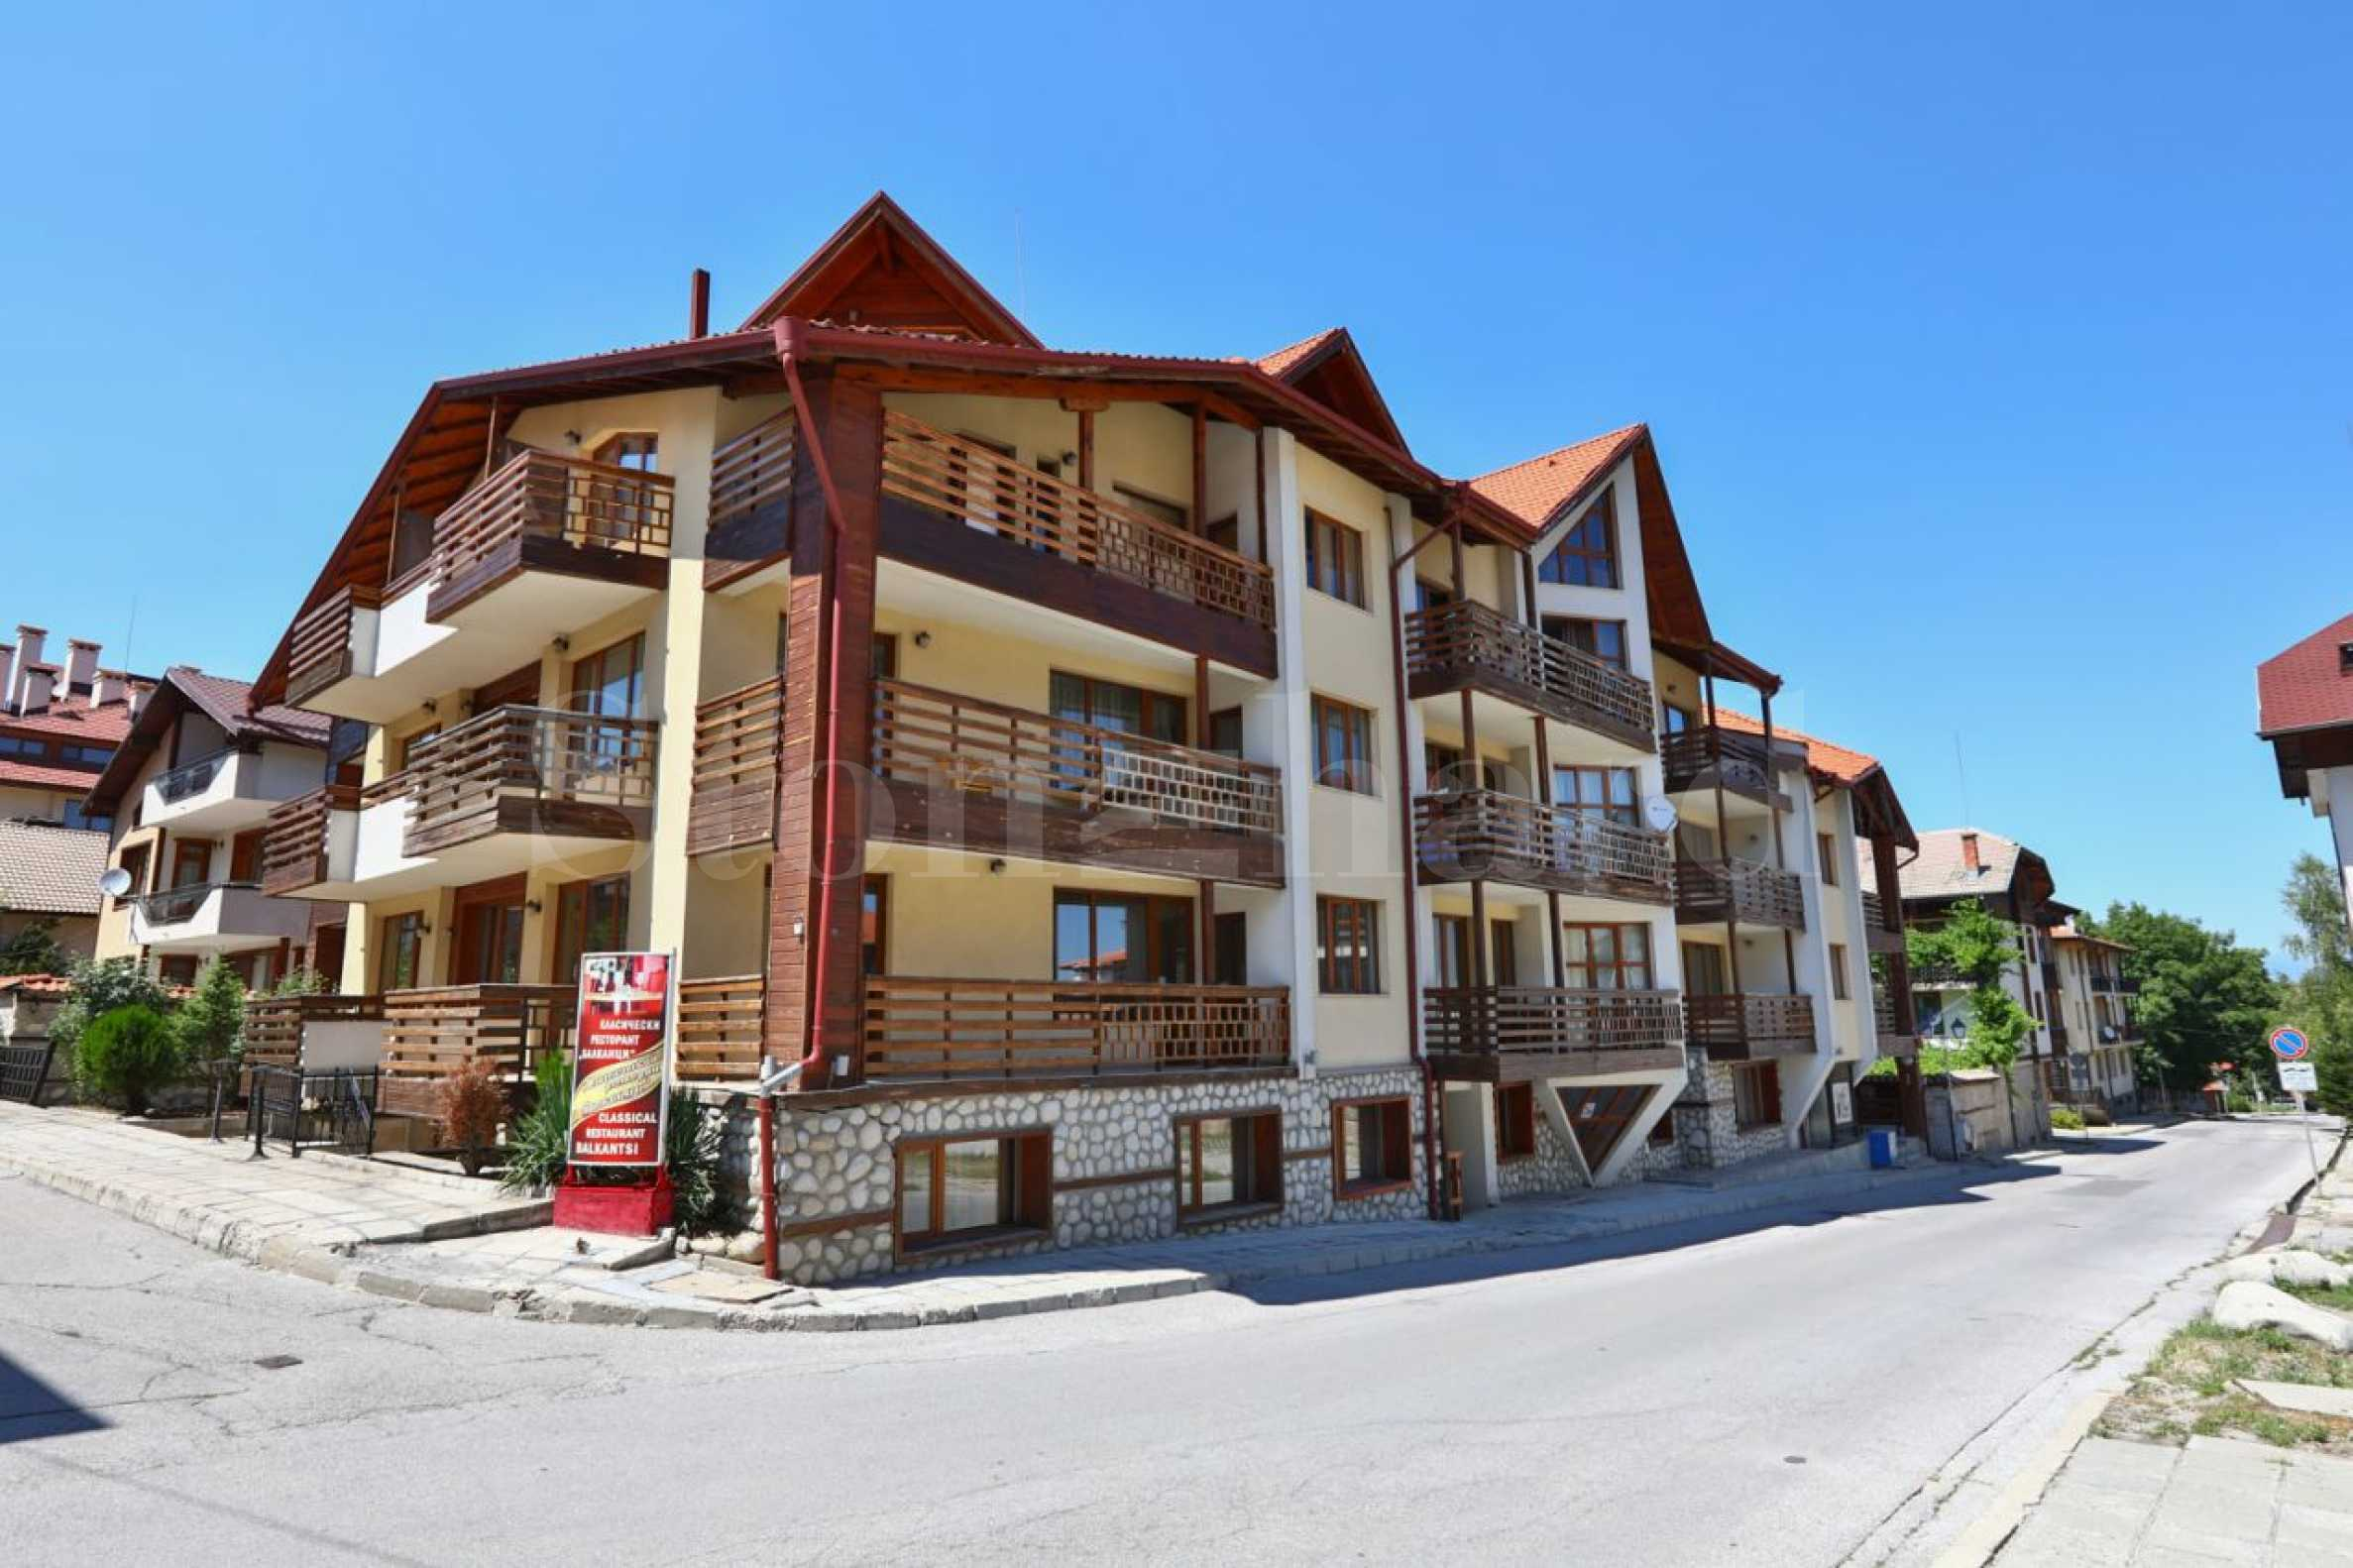 1-bedroom apartment in Bansko1 - Stonehard